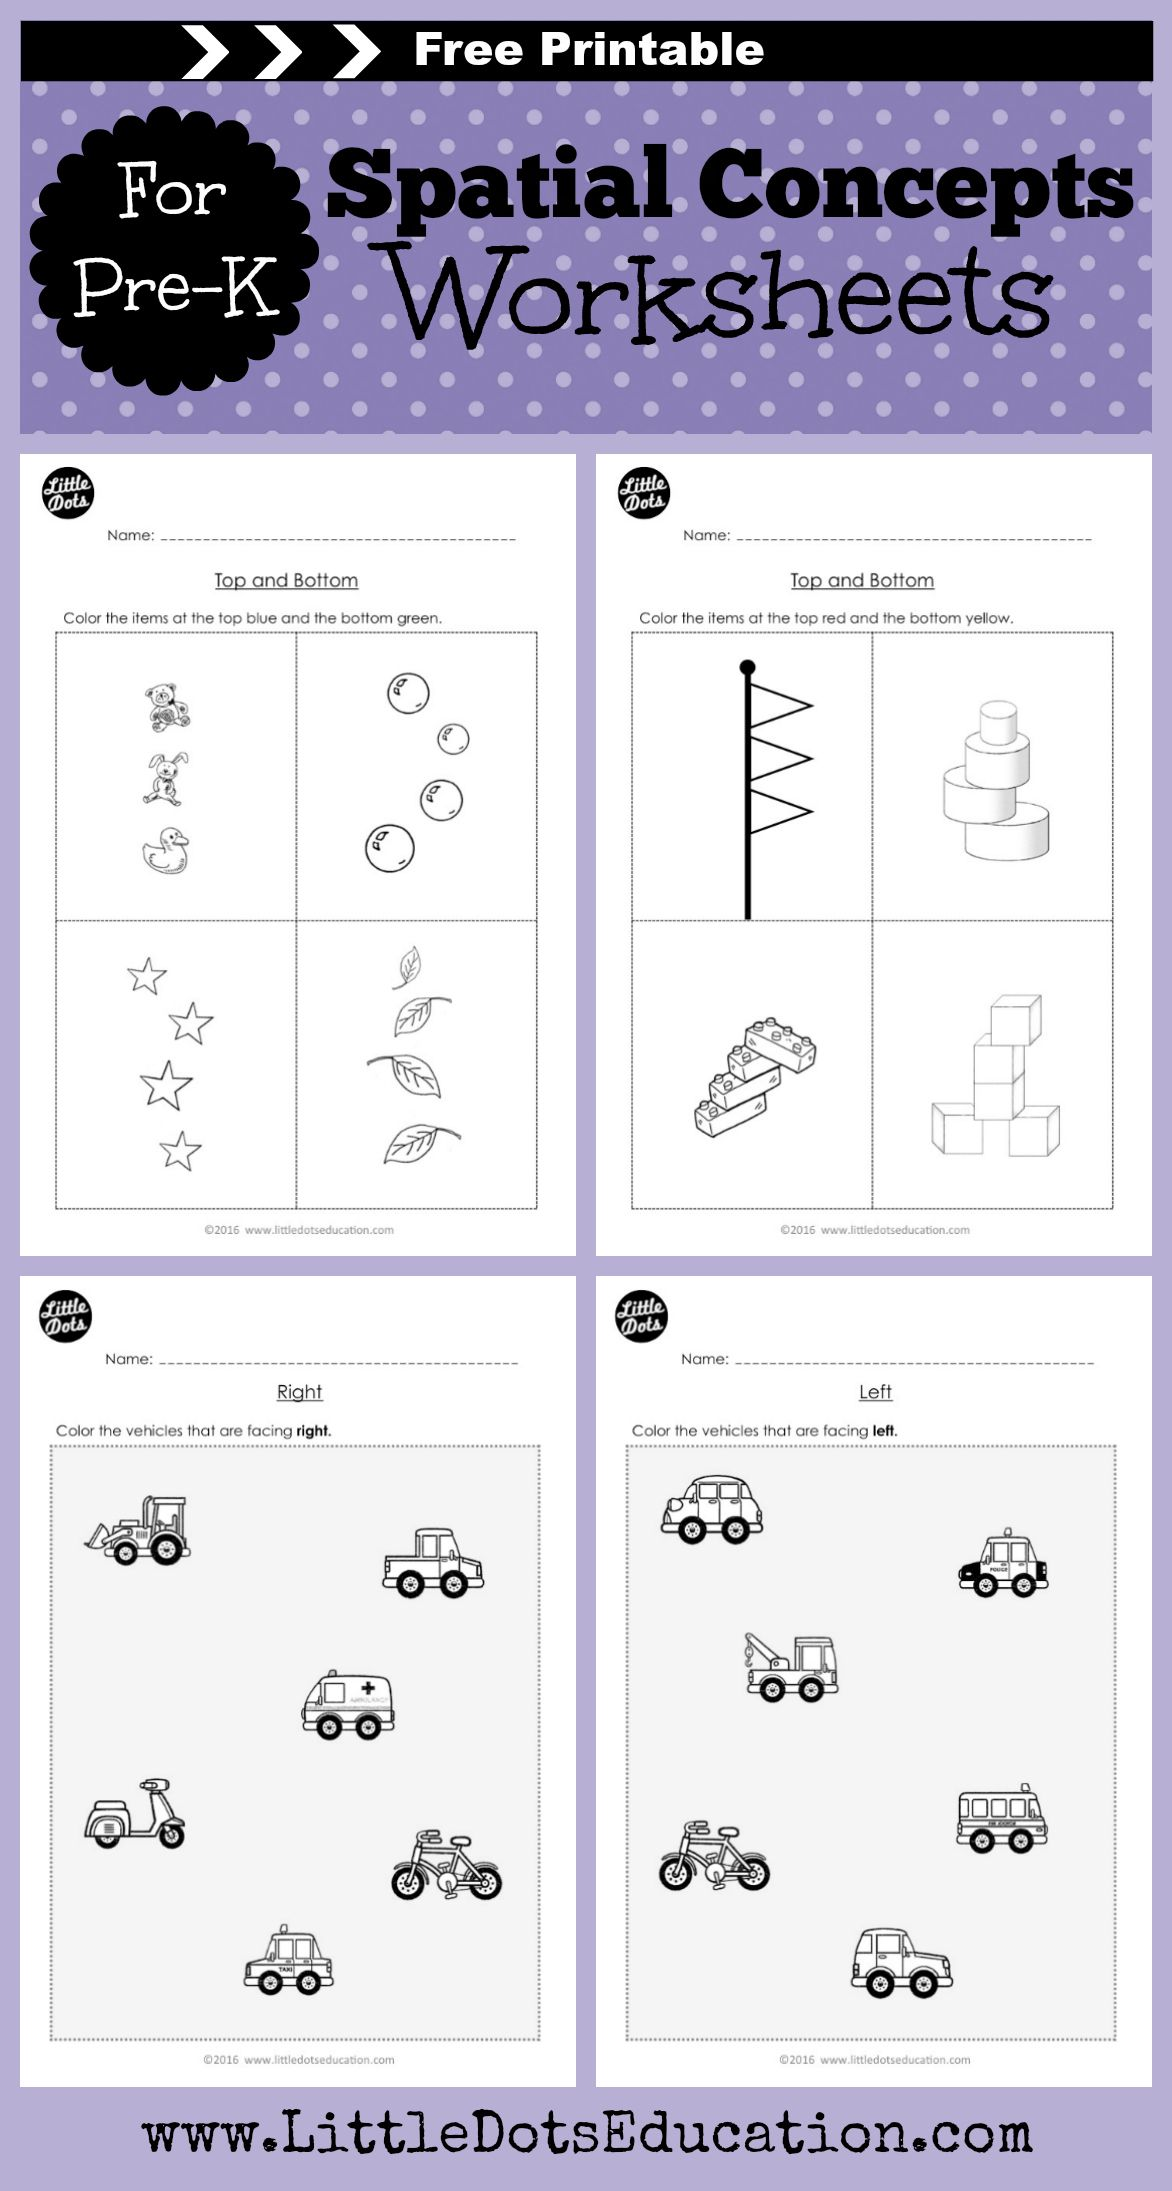 Pre-K Spatial Concepts Worksheets and Activities   Spatial concepts [ 2191 x 1172 Pixel ]